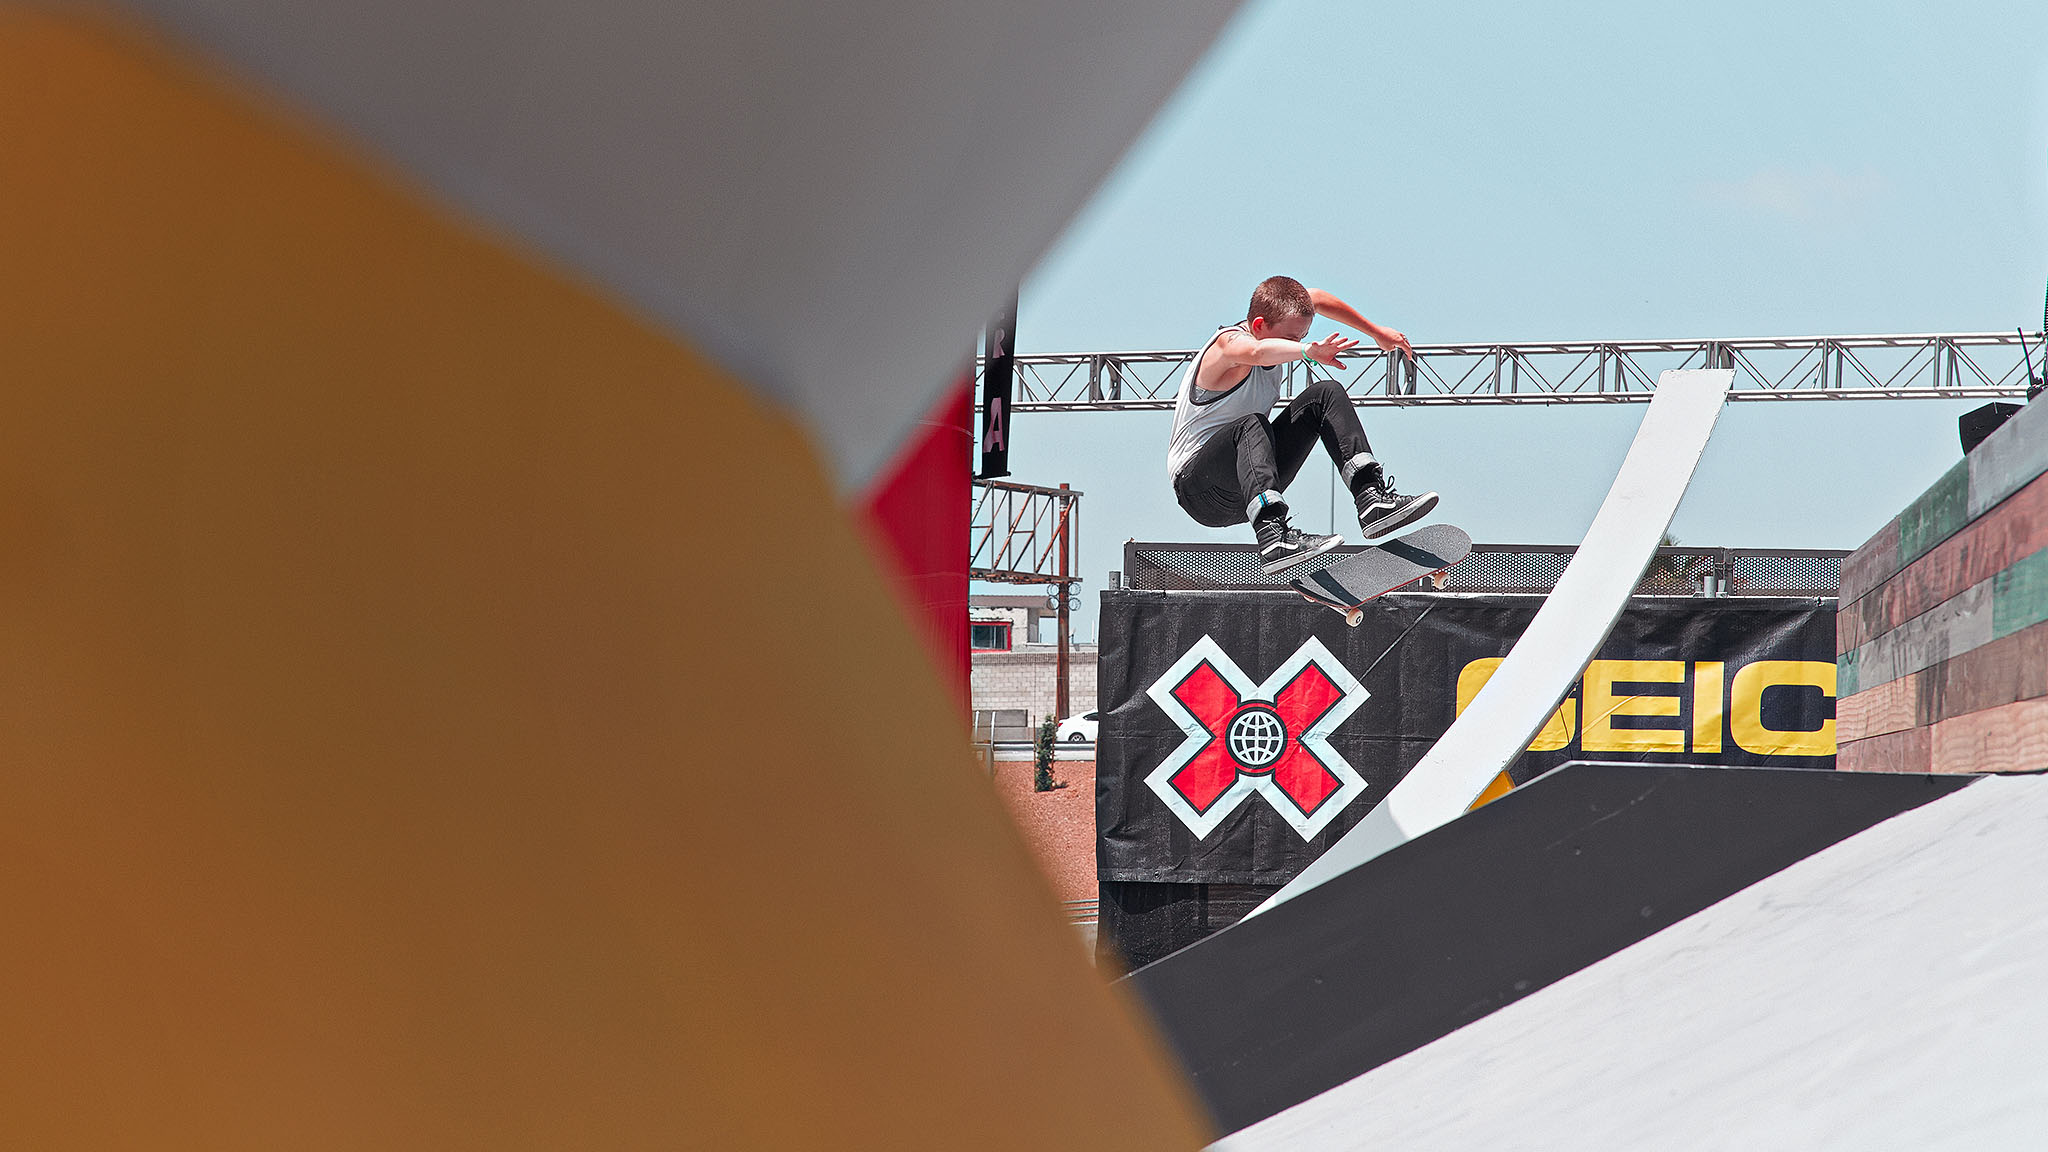 pLacey Baker is proving to be Leticia Bufoni's toughest competition in Women's Skateboard Street, coming in second both at X Games Foz do Iguaçu in April as well as here in Los Angeles on Thursday afternoon./p